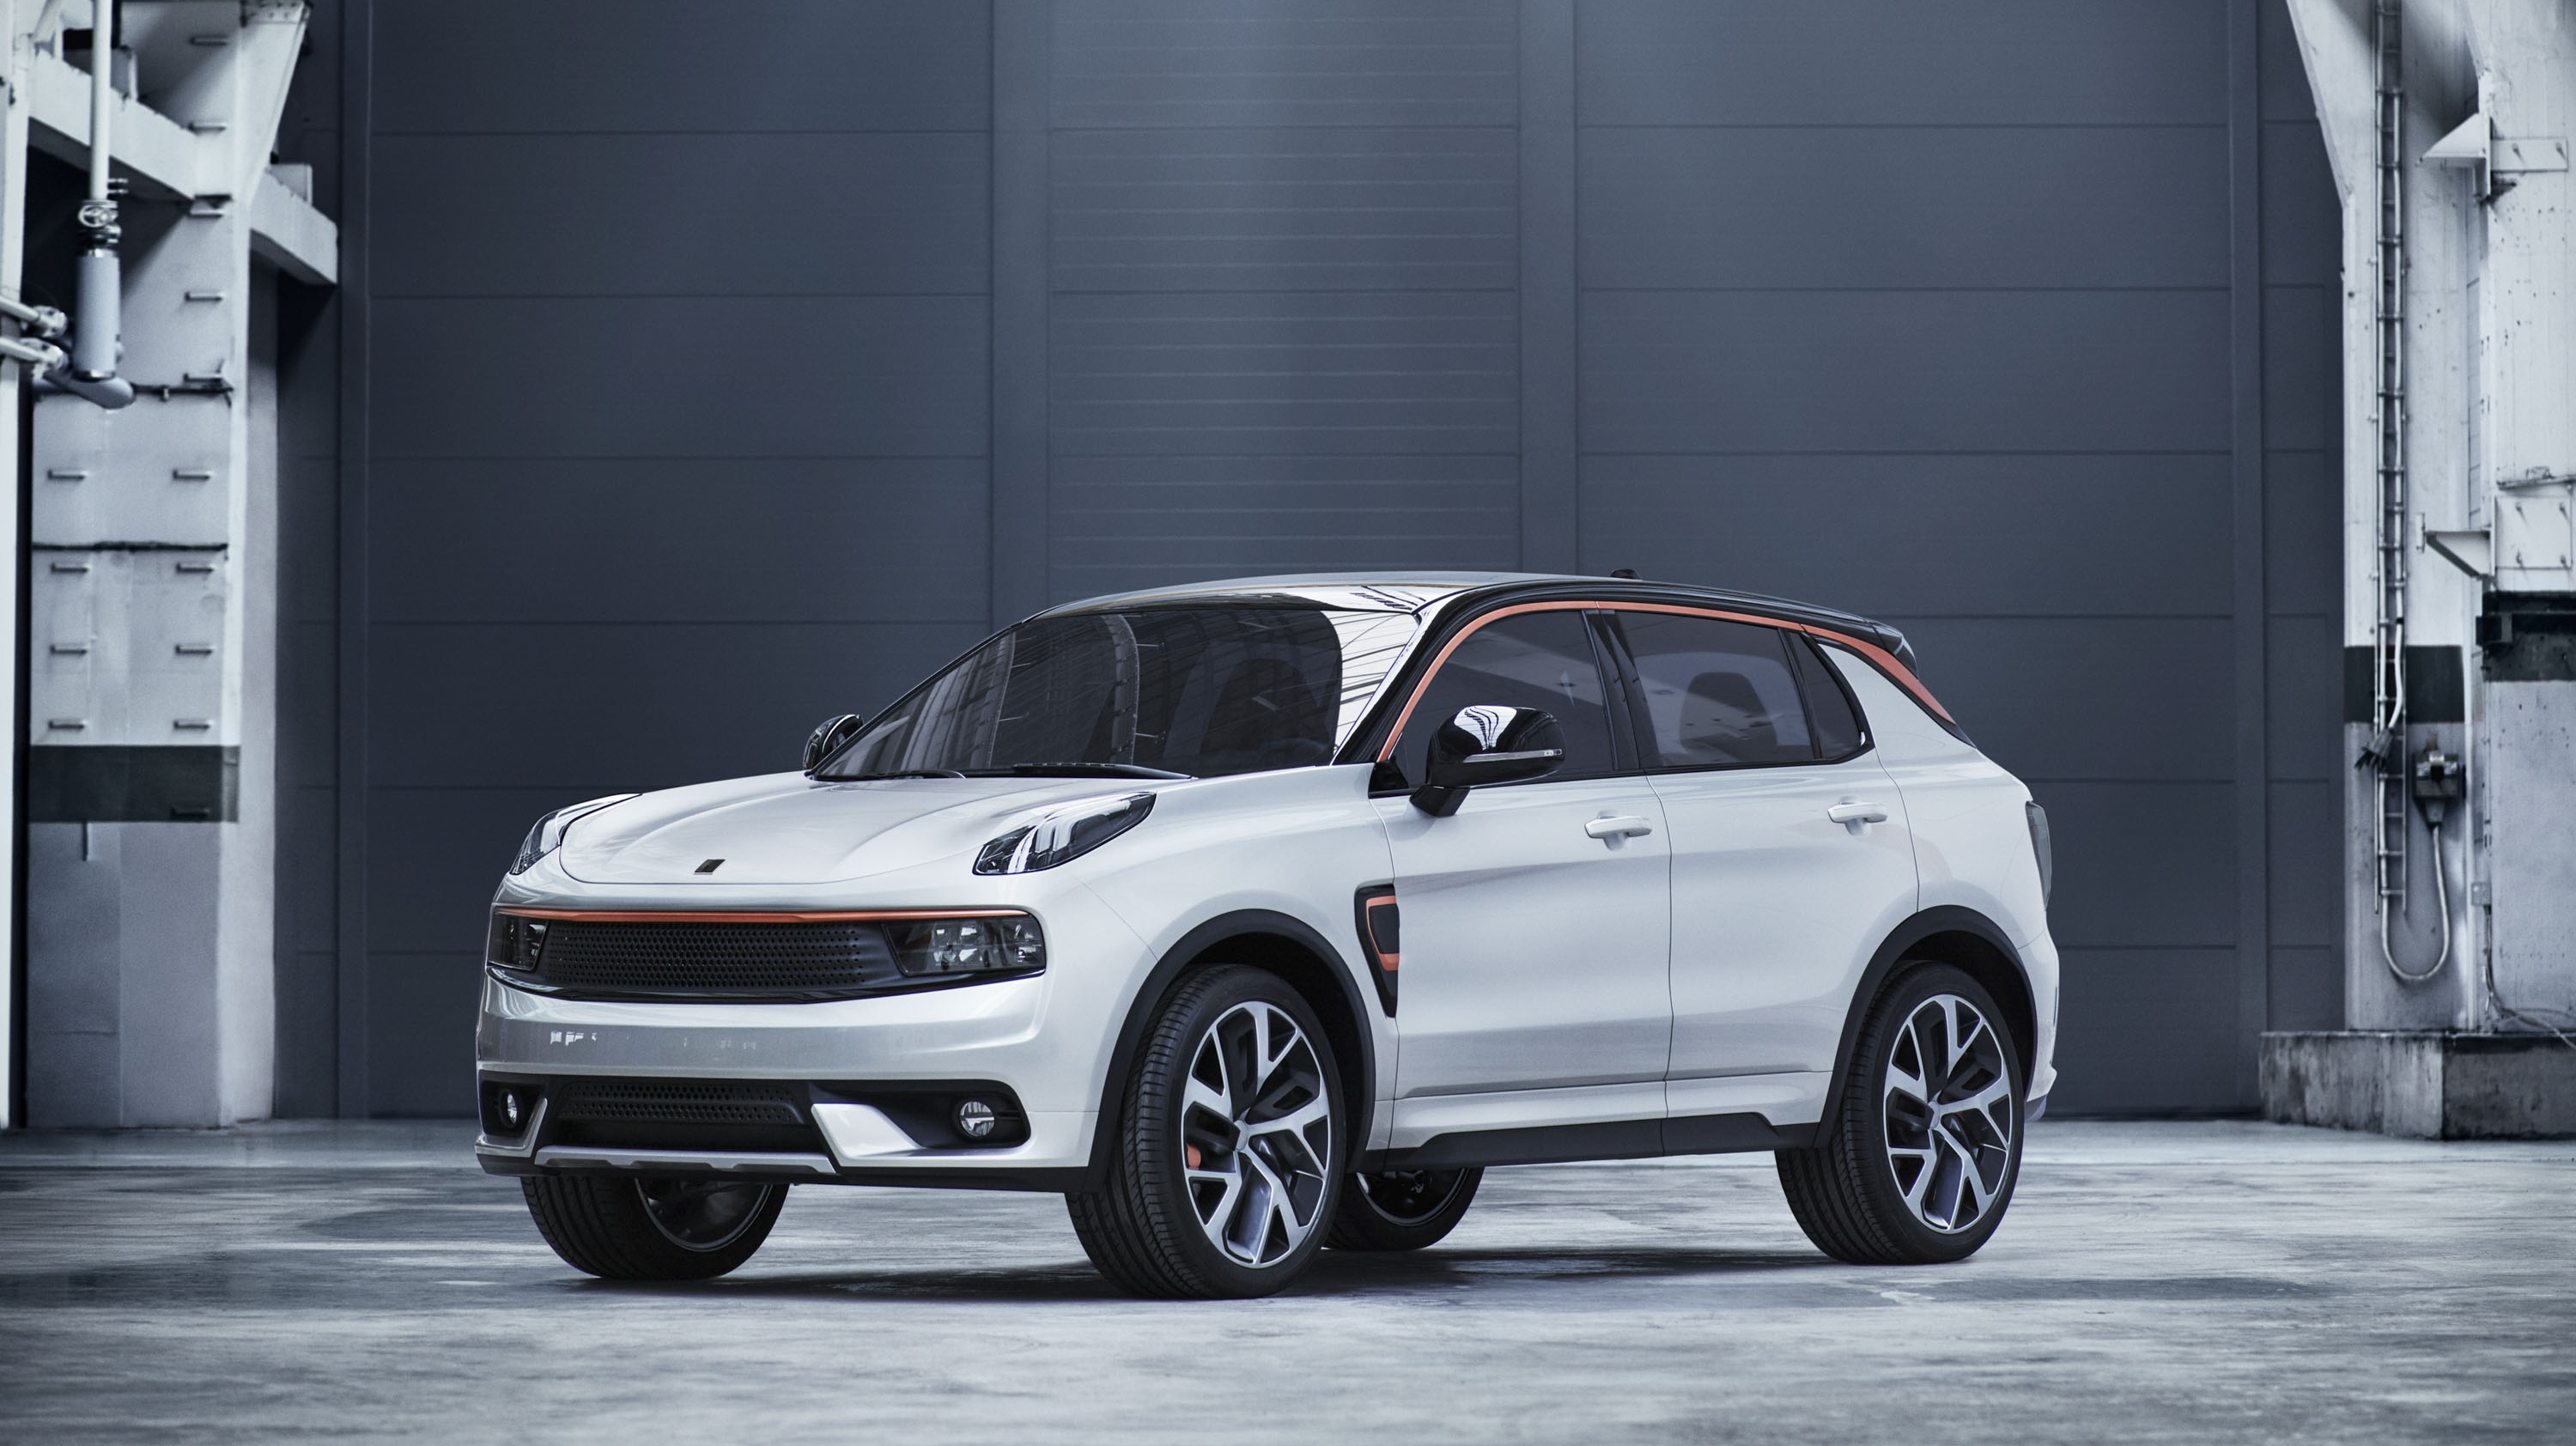 Discover What The Potentially Awesome Lynk & Co Car ...